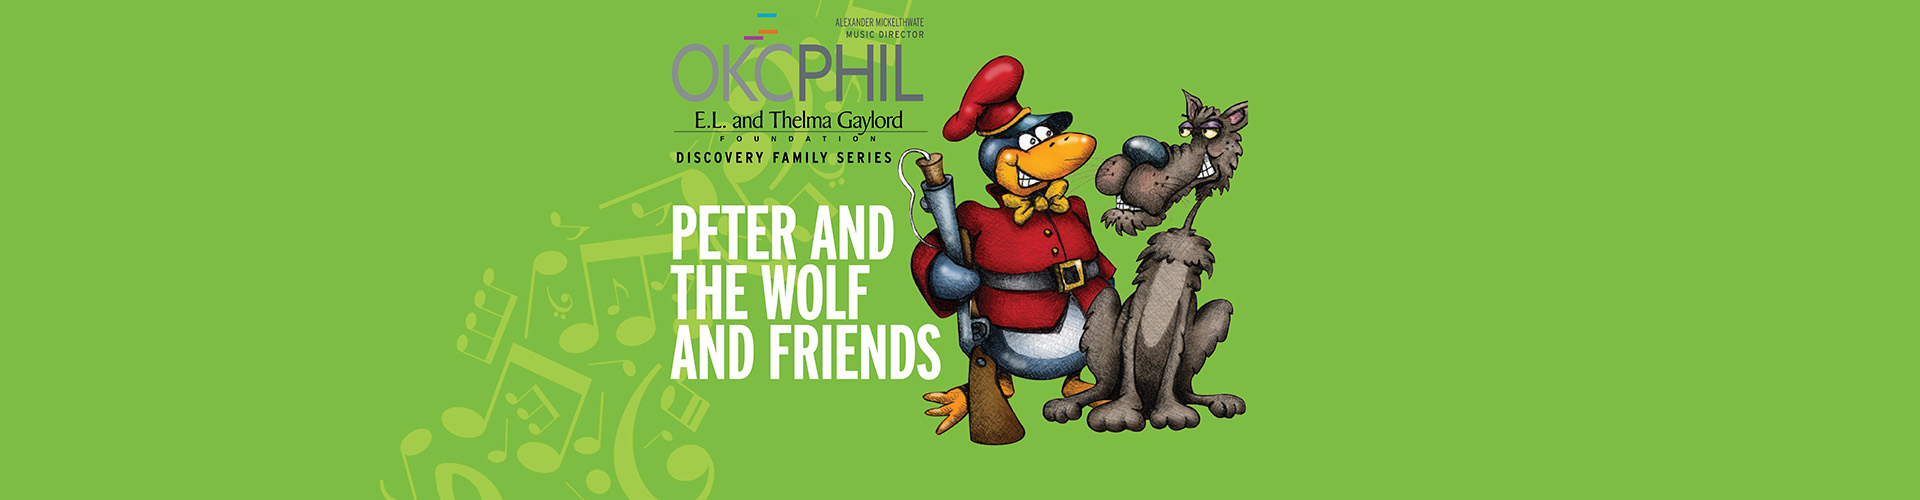 Peter and the Wolf and Friends